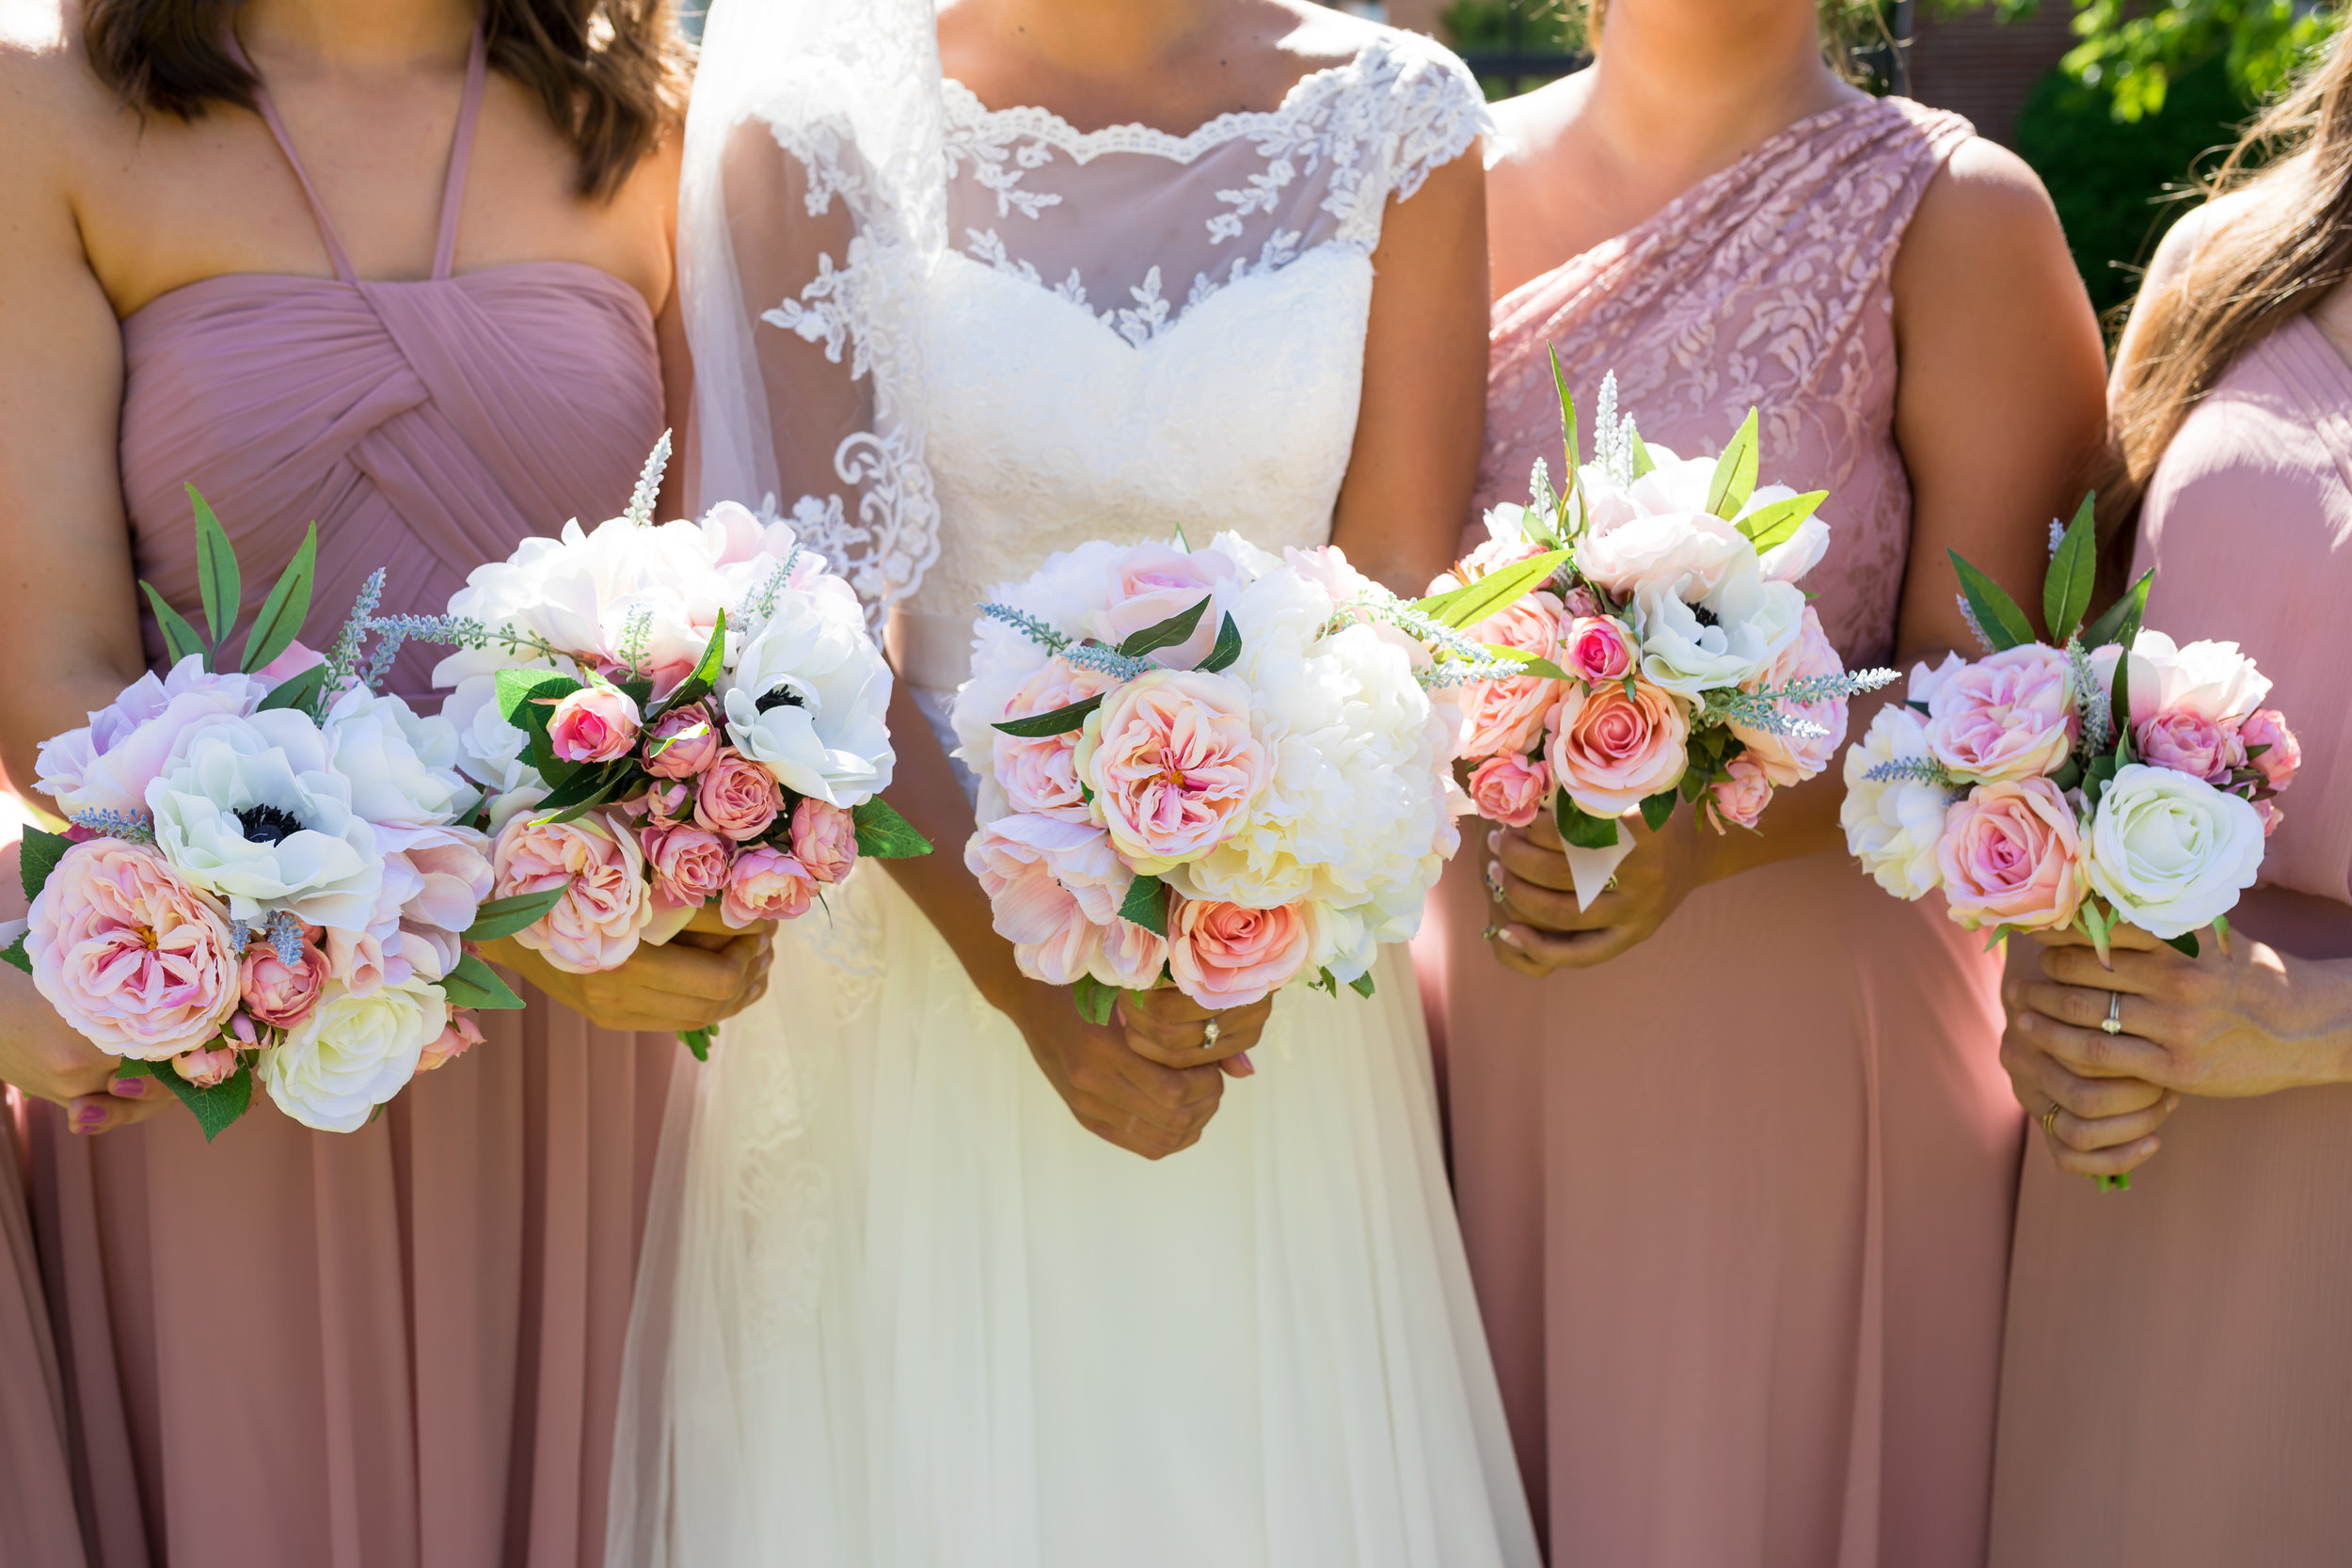 Perfectly Planned Moments Eugene Oregon Wedding Planner Bouquets.jpg